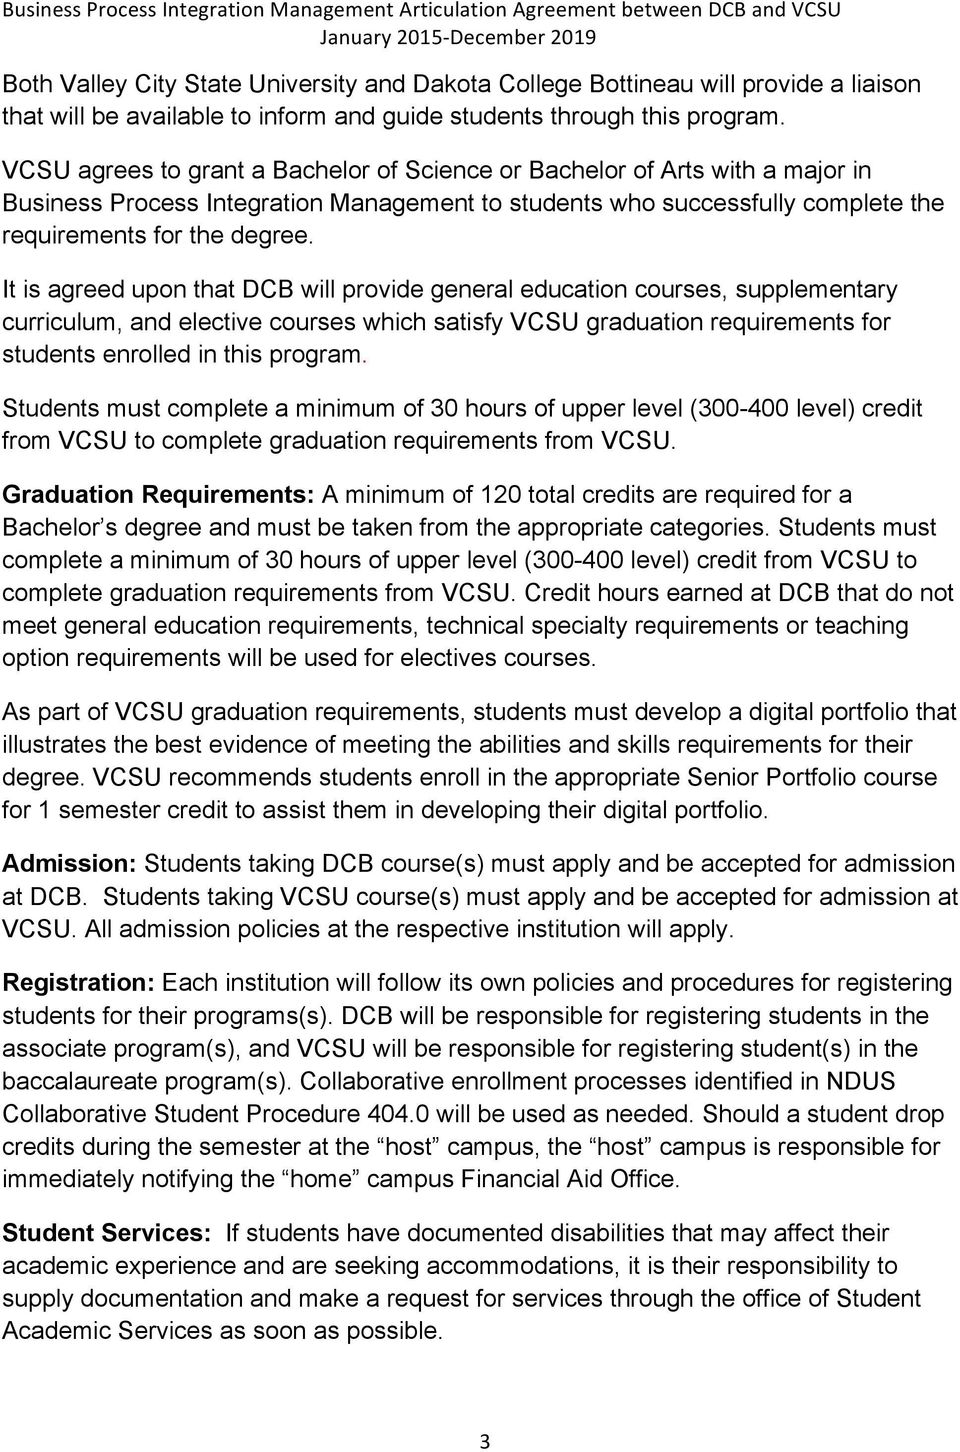 It is agreed upon that DCB will provide general education courses, supplementary curriculum, and elective courses which satisfy VCSU graduation requirements for students enrolled in this program.